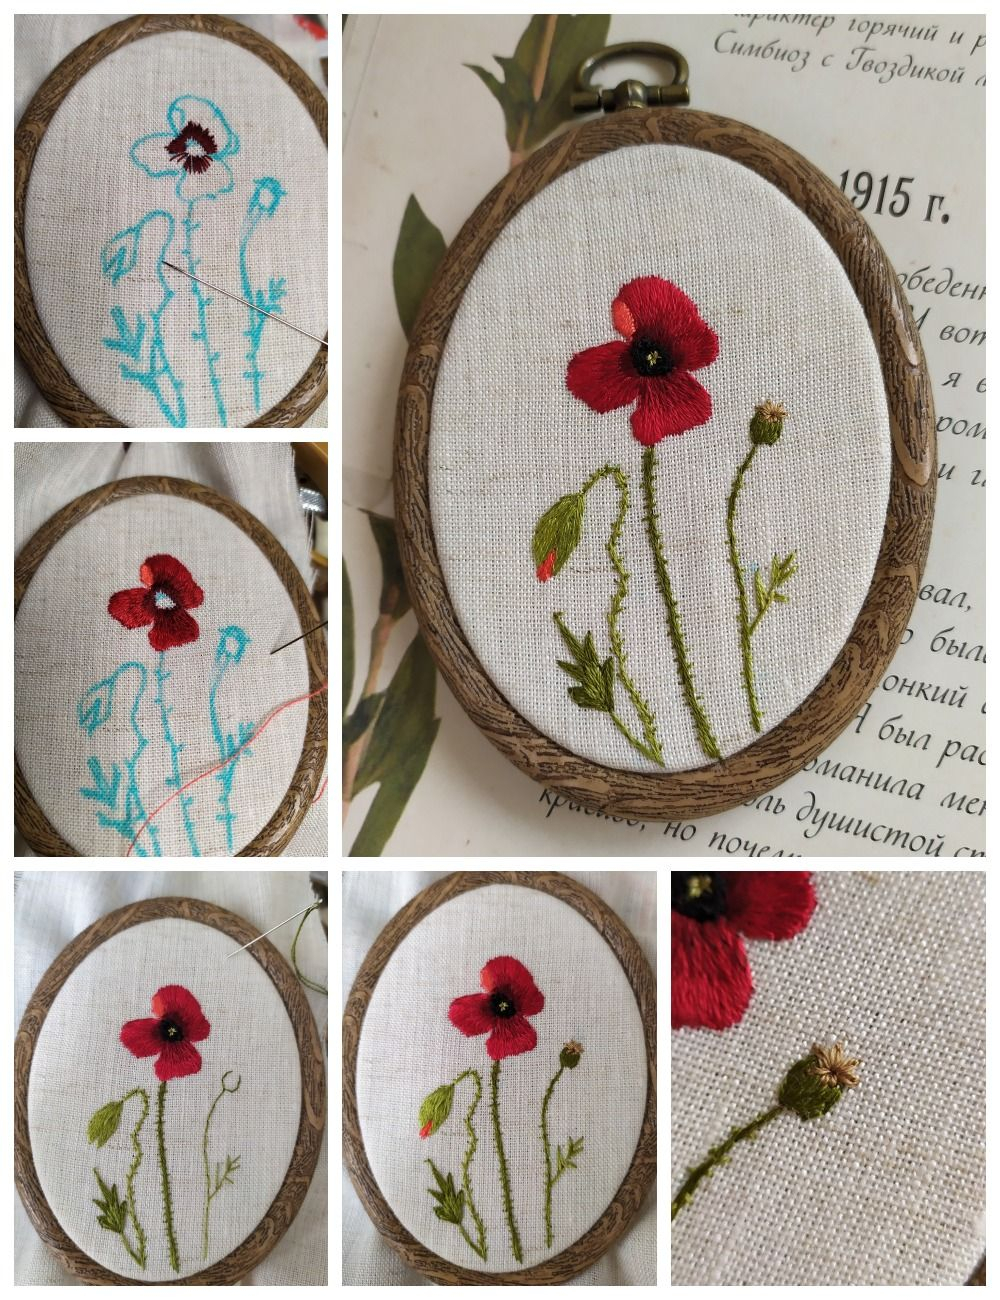 Poppy Embroidery Work In Process | Embroidery Hoop Wall Intended For Most Popular Blended Fabric Poppy Red Wall Hangings (View 16 of 20)